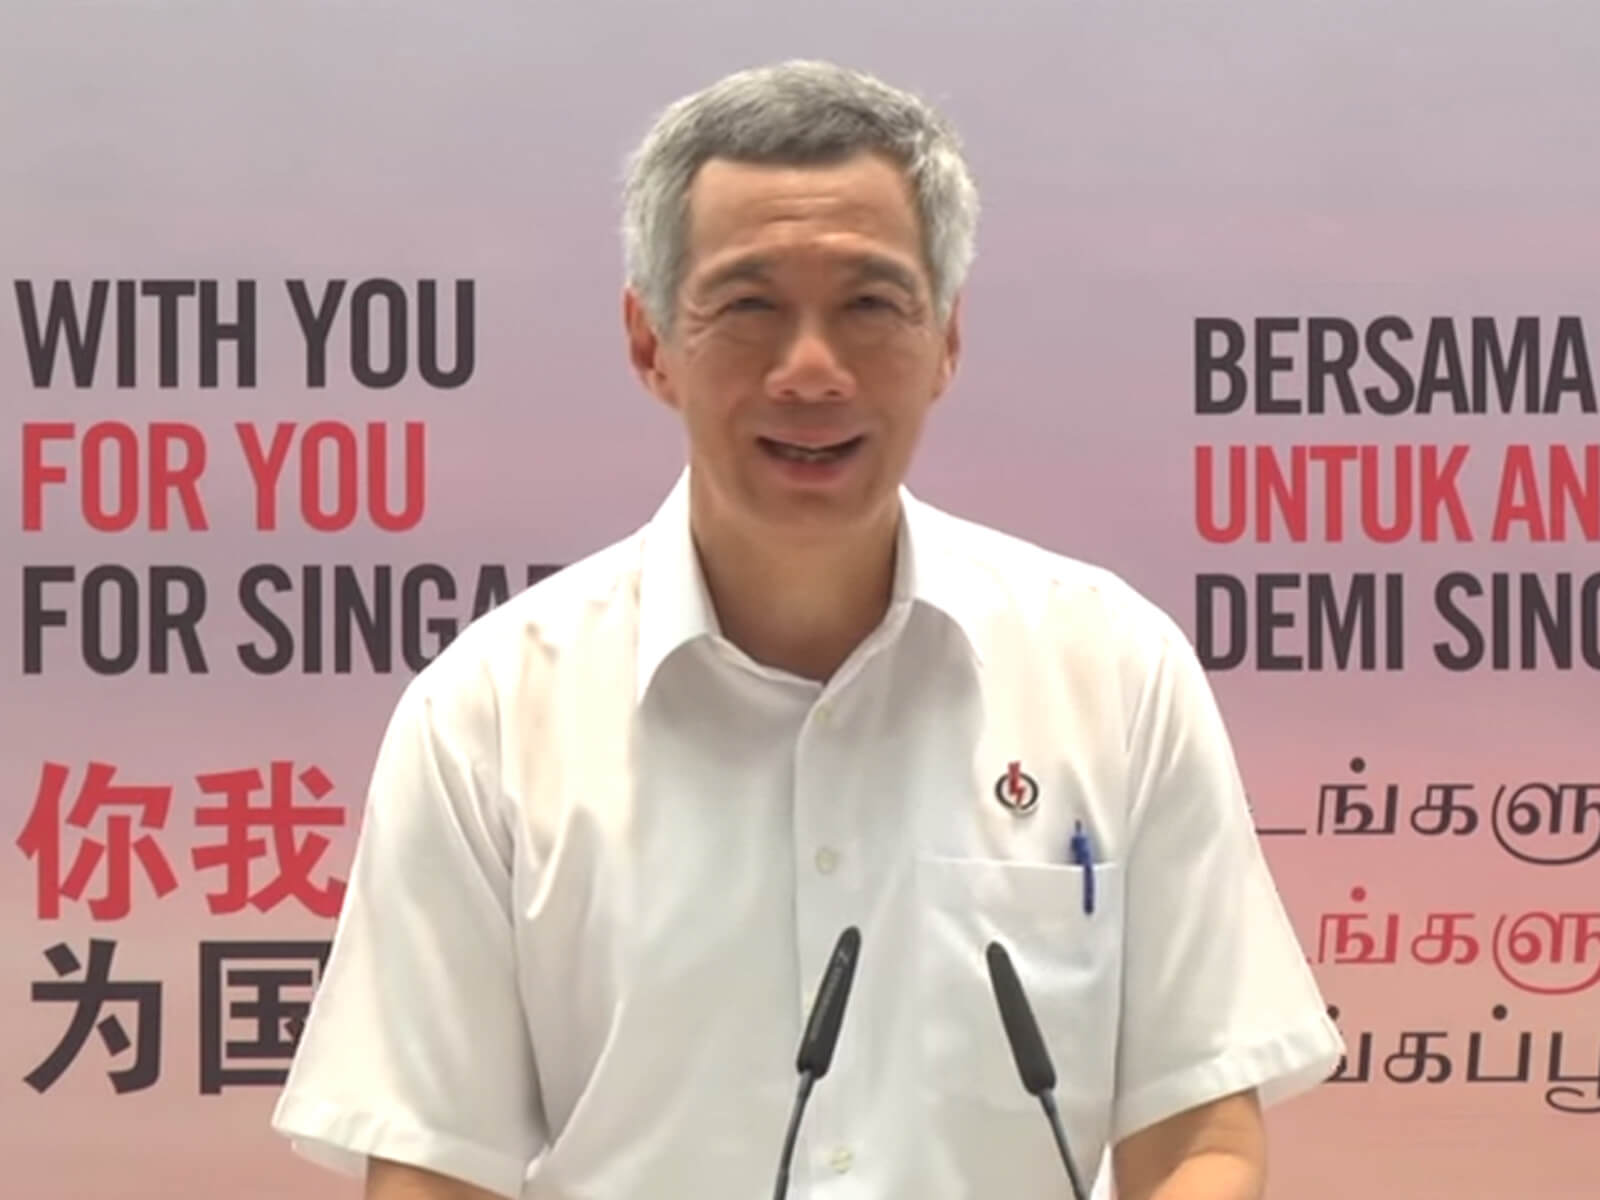 Singapore Prime Minister Lee Hsien Loong gives a speech in a white shirt